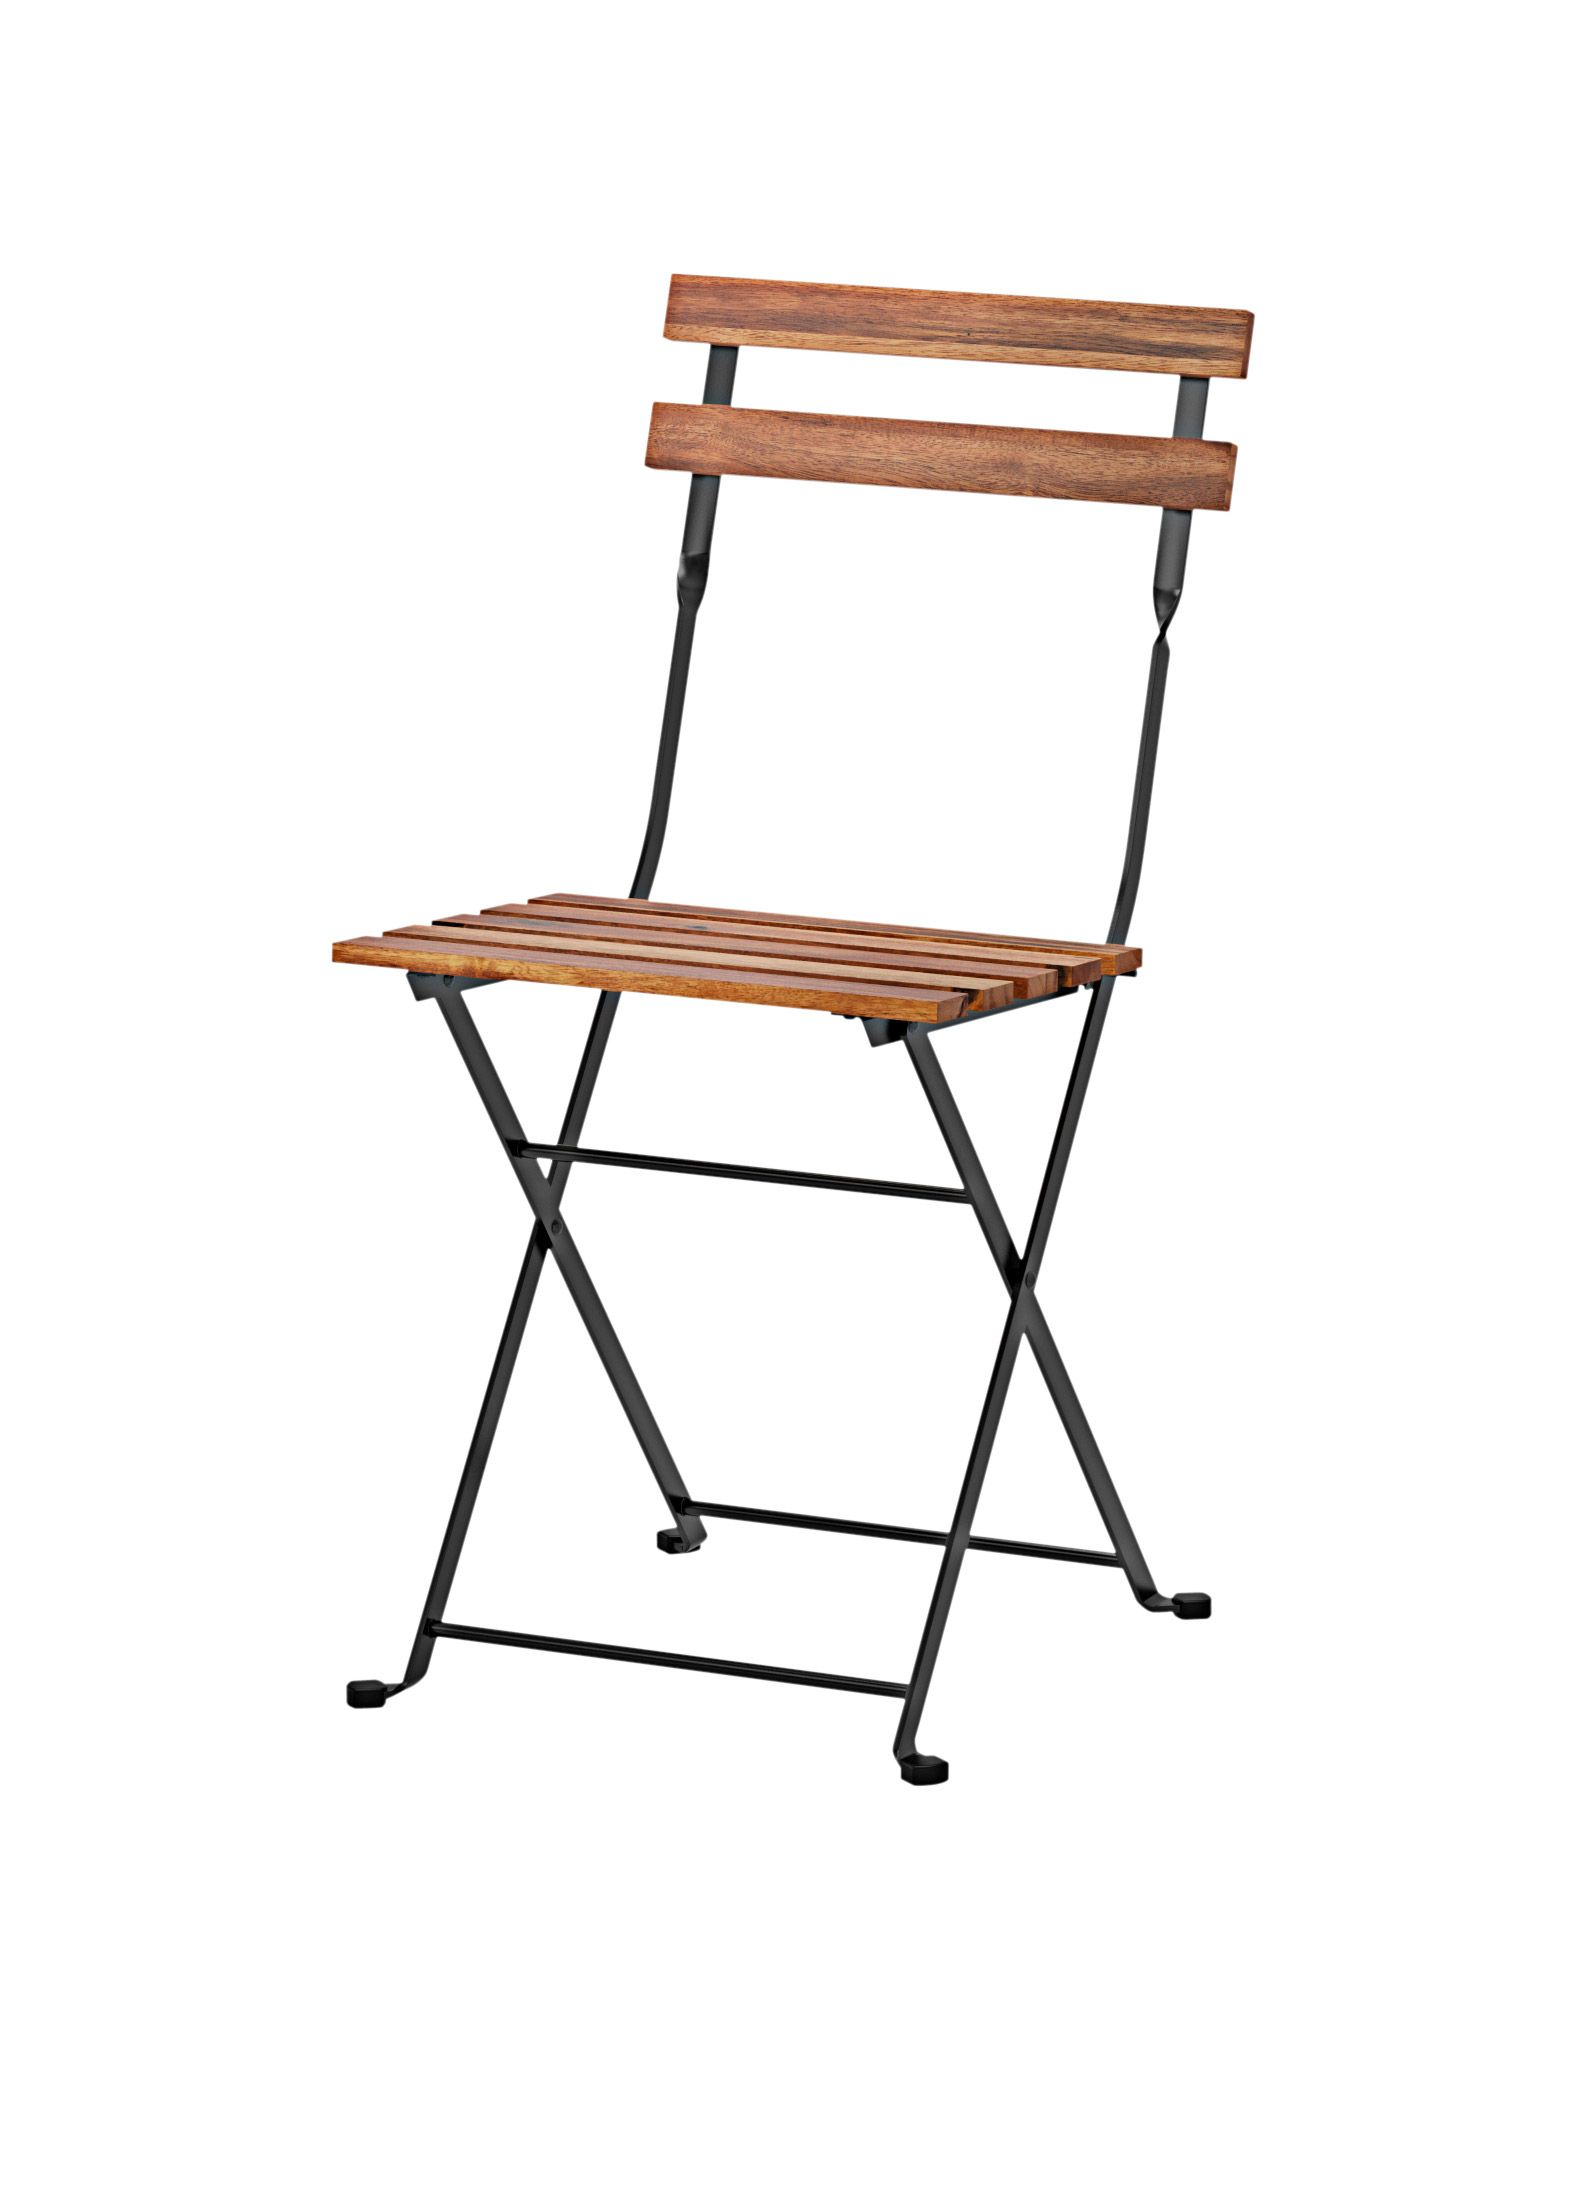 10 Modern Folding Chairs Stylish Folding Chair Designs